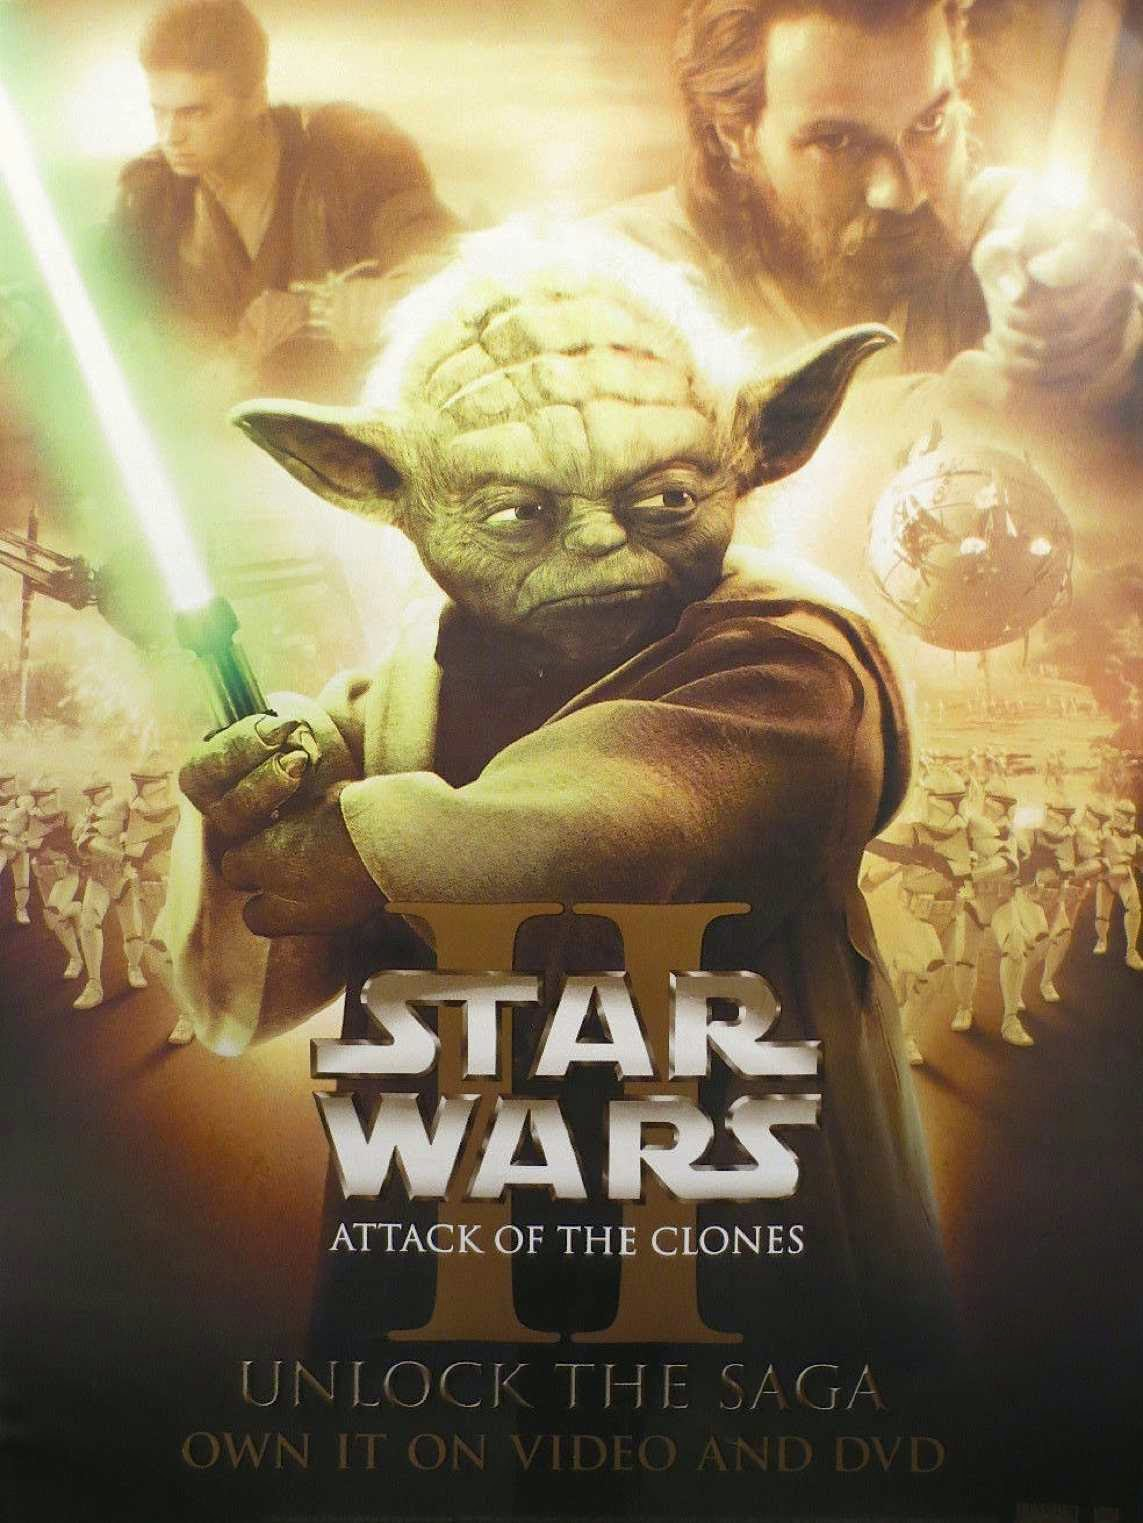 star wars the attack of the clones 2002 hd printable poster wallpaper yoda art animated cartoon poster